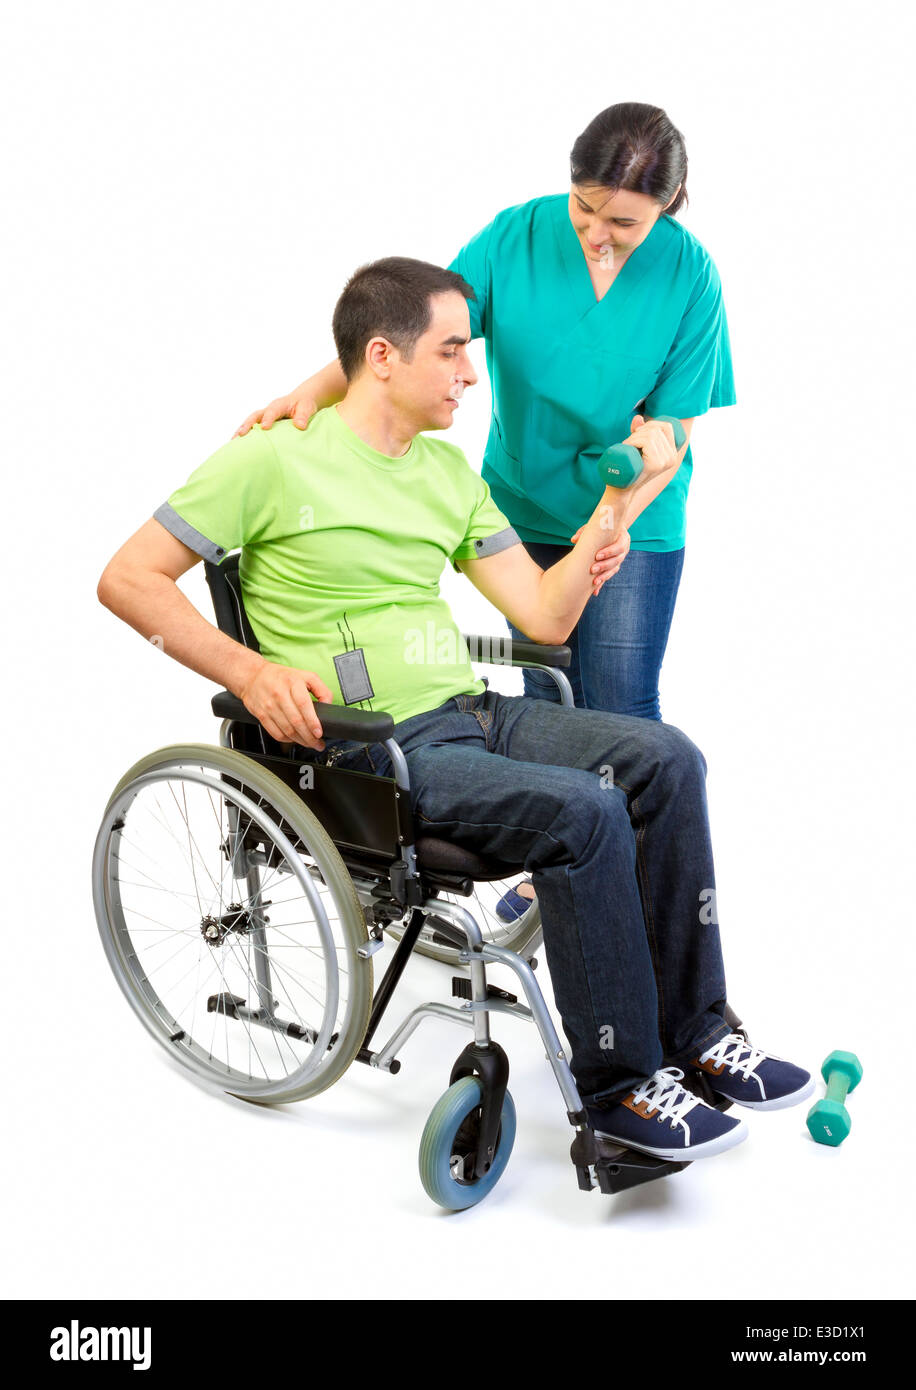 Physical therapist works with patient in lifting hands weights. Young adult in wheelchair. - Stock Image